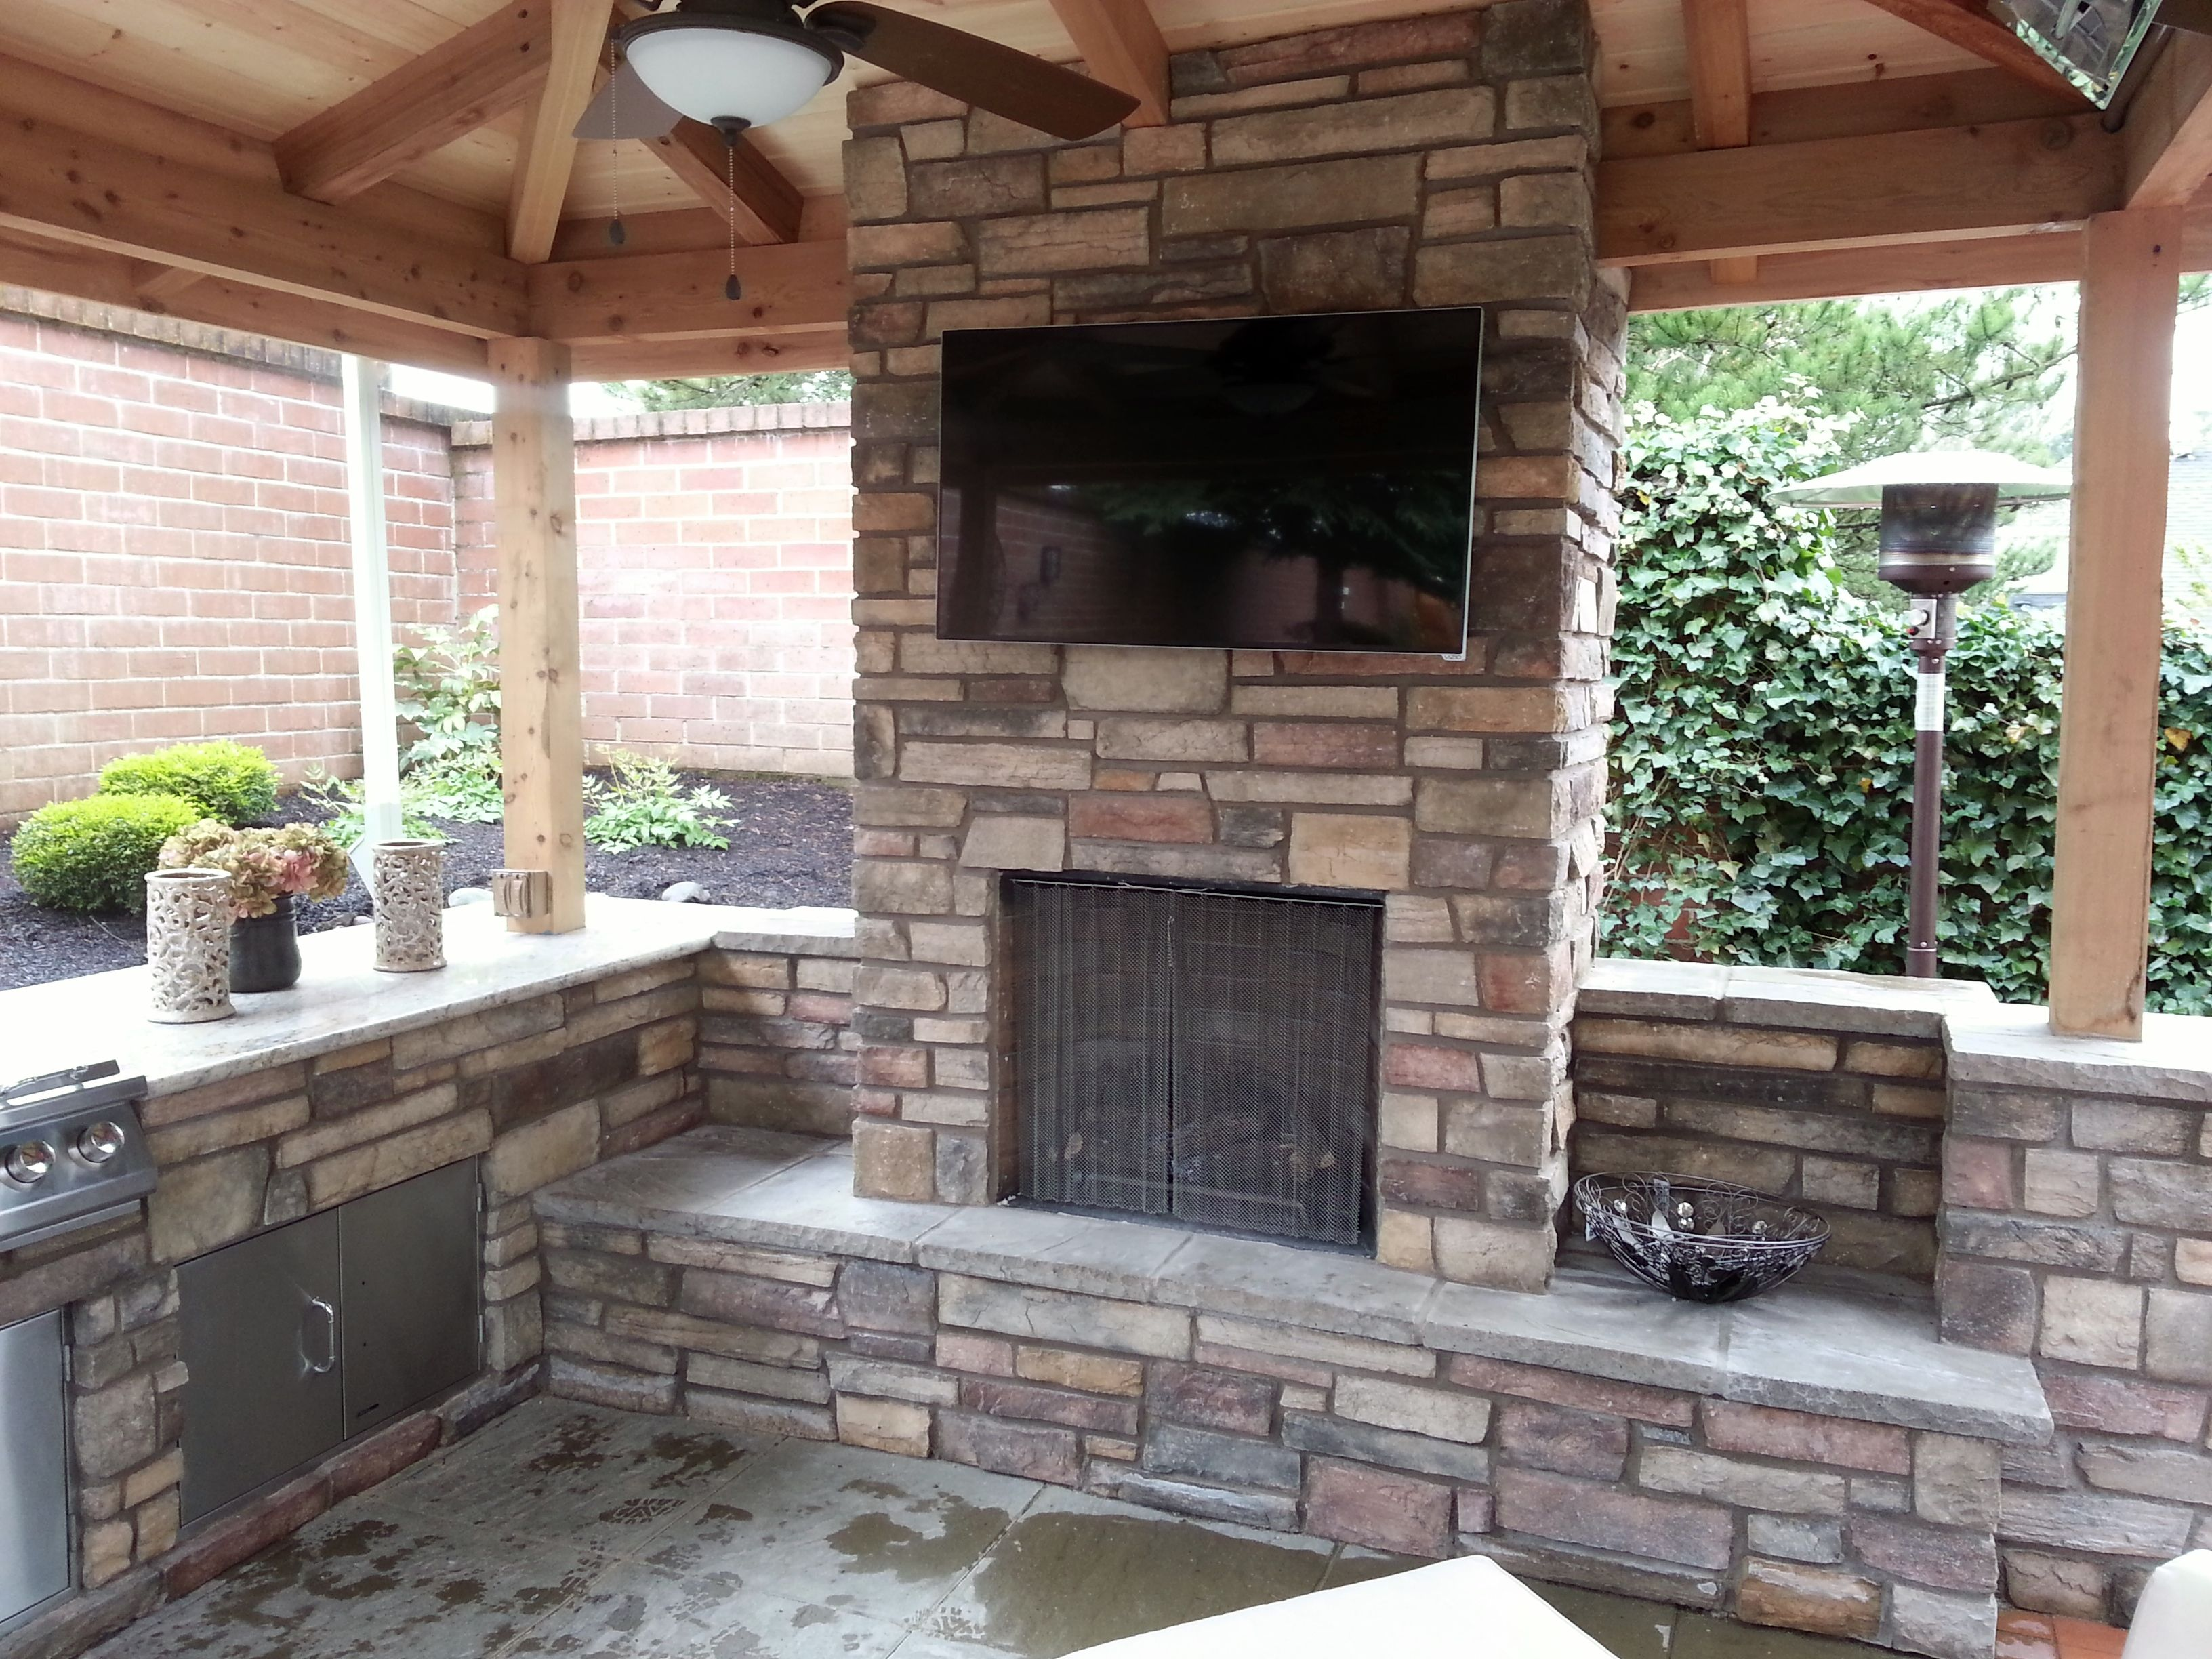 Fireplace And Patio Outdoor Fireplace Outdoor Living Outdoor Kitchen